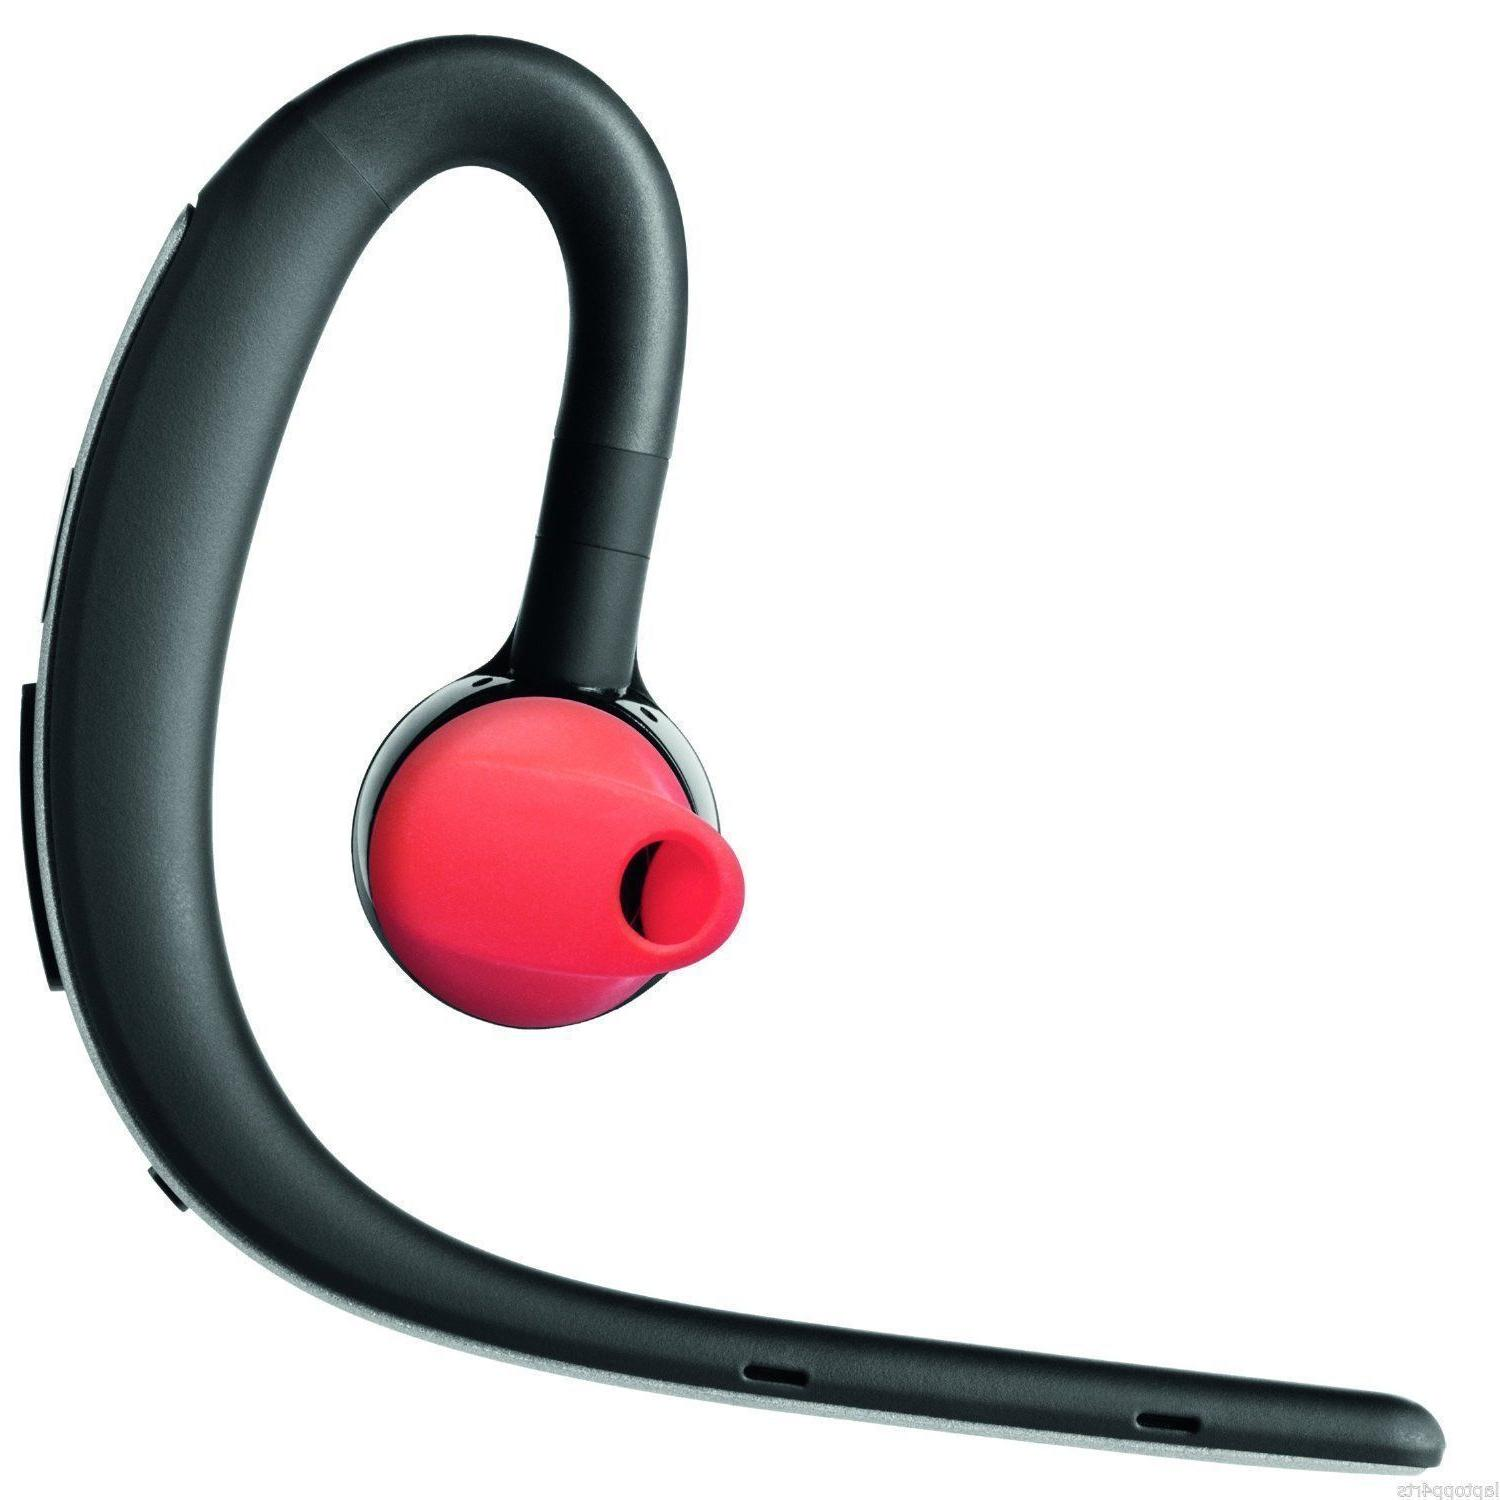 New Genuine Jabra Storm Bluetooth Headset Hd Voice